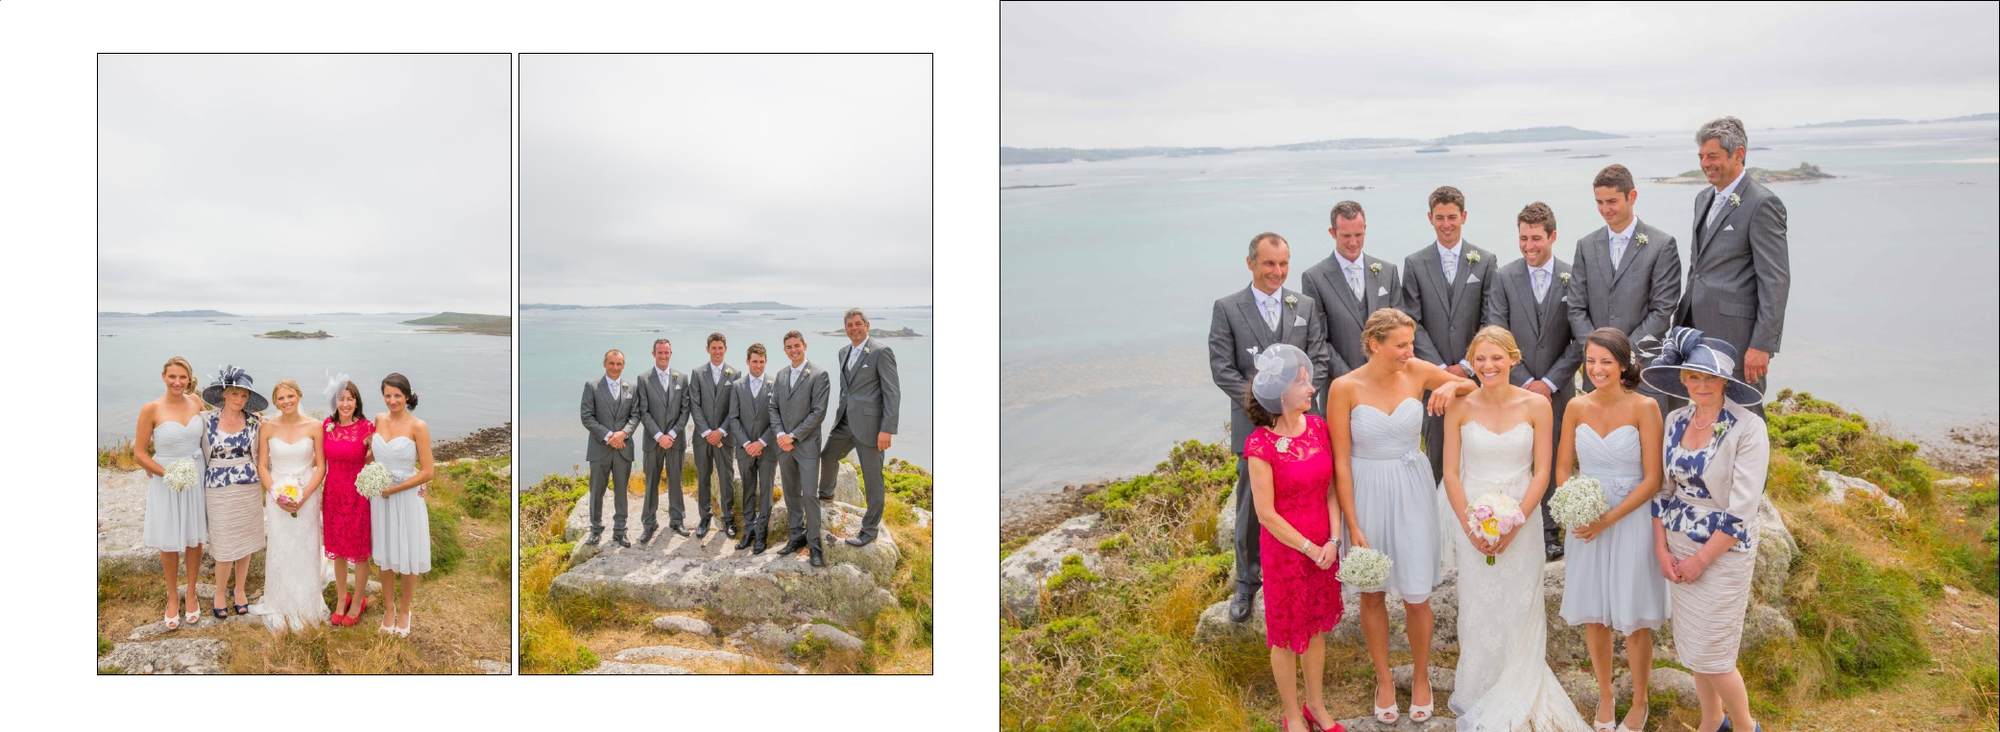 Isles of scillys group wedding photographs